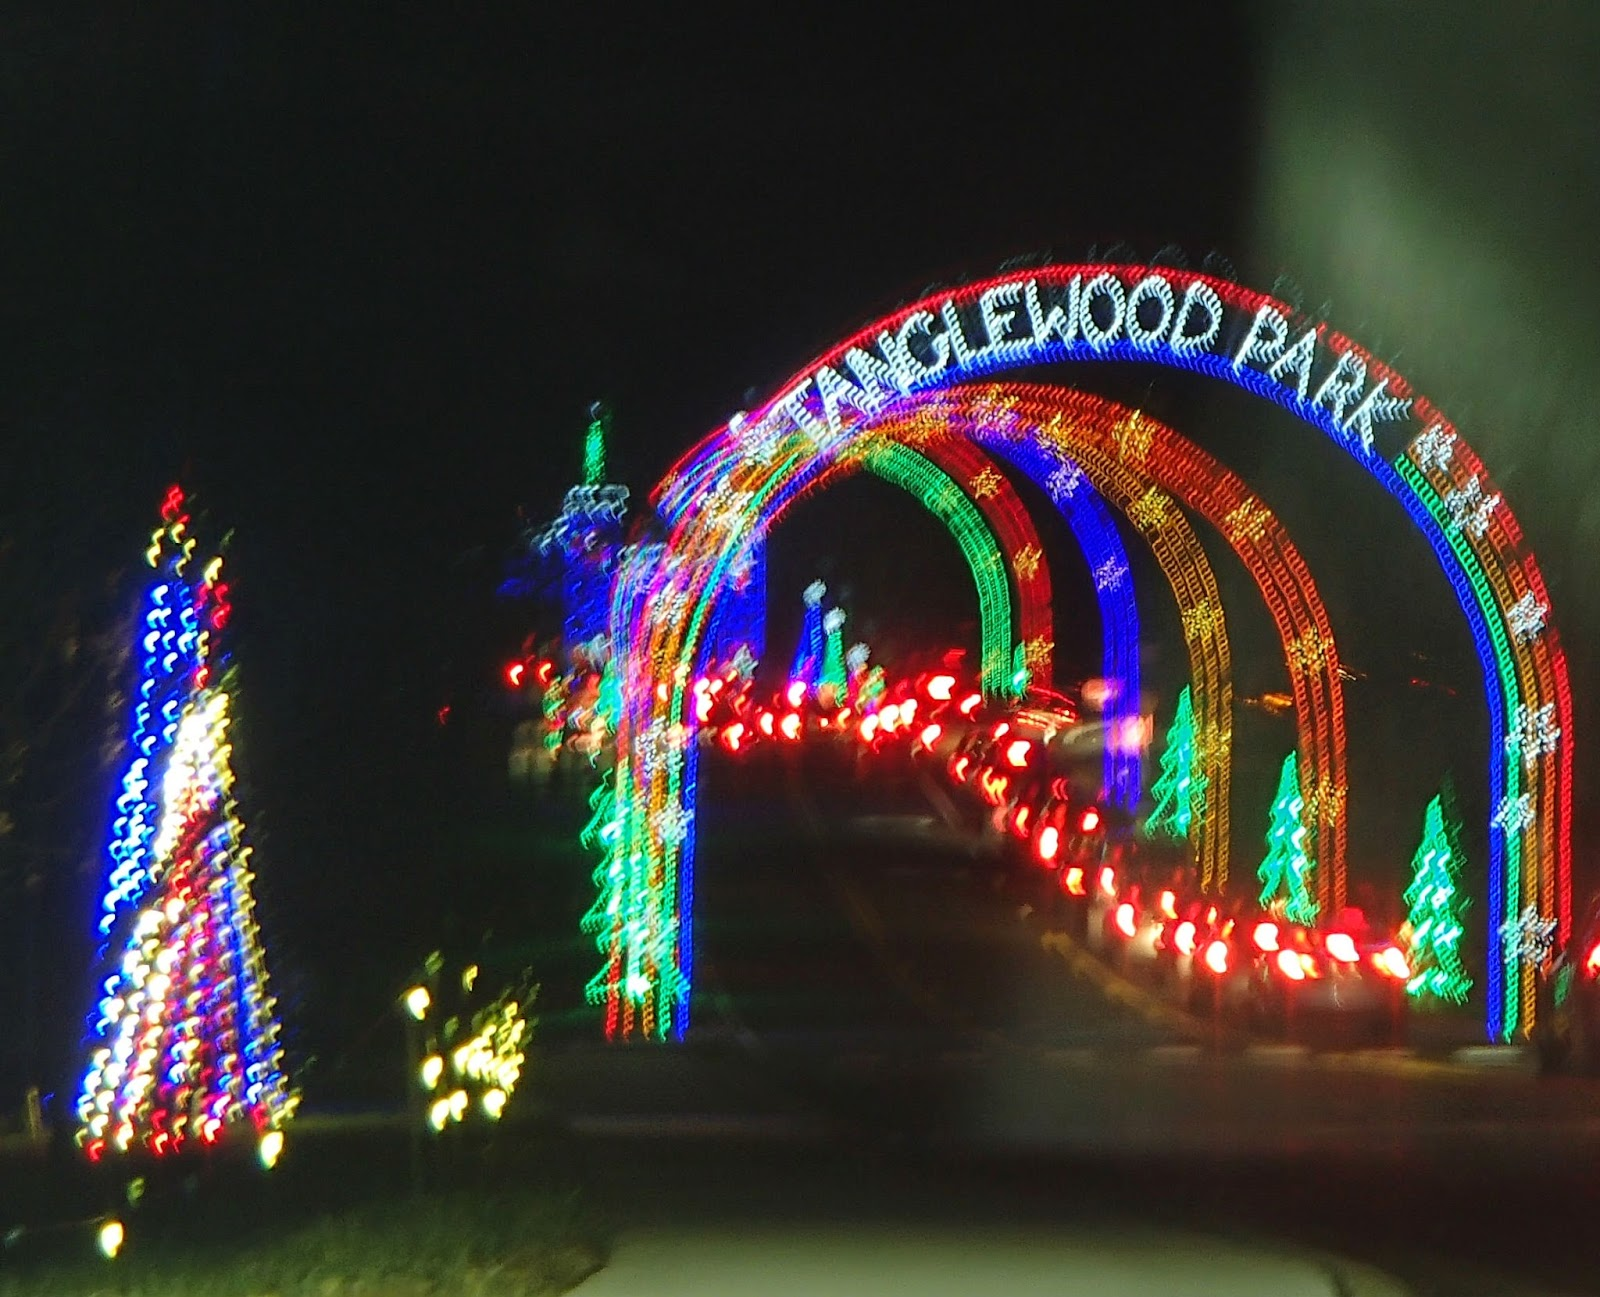 Tanglewood Festival of Lights | Navigating Hectivity by Micki Bare